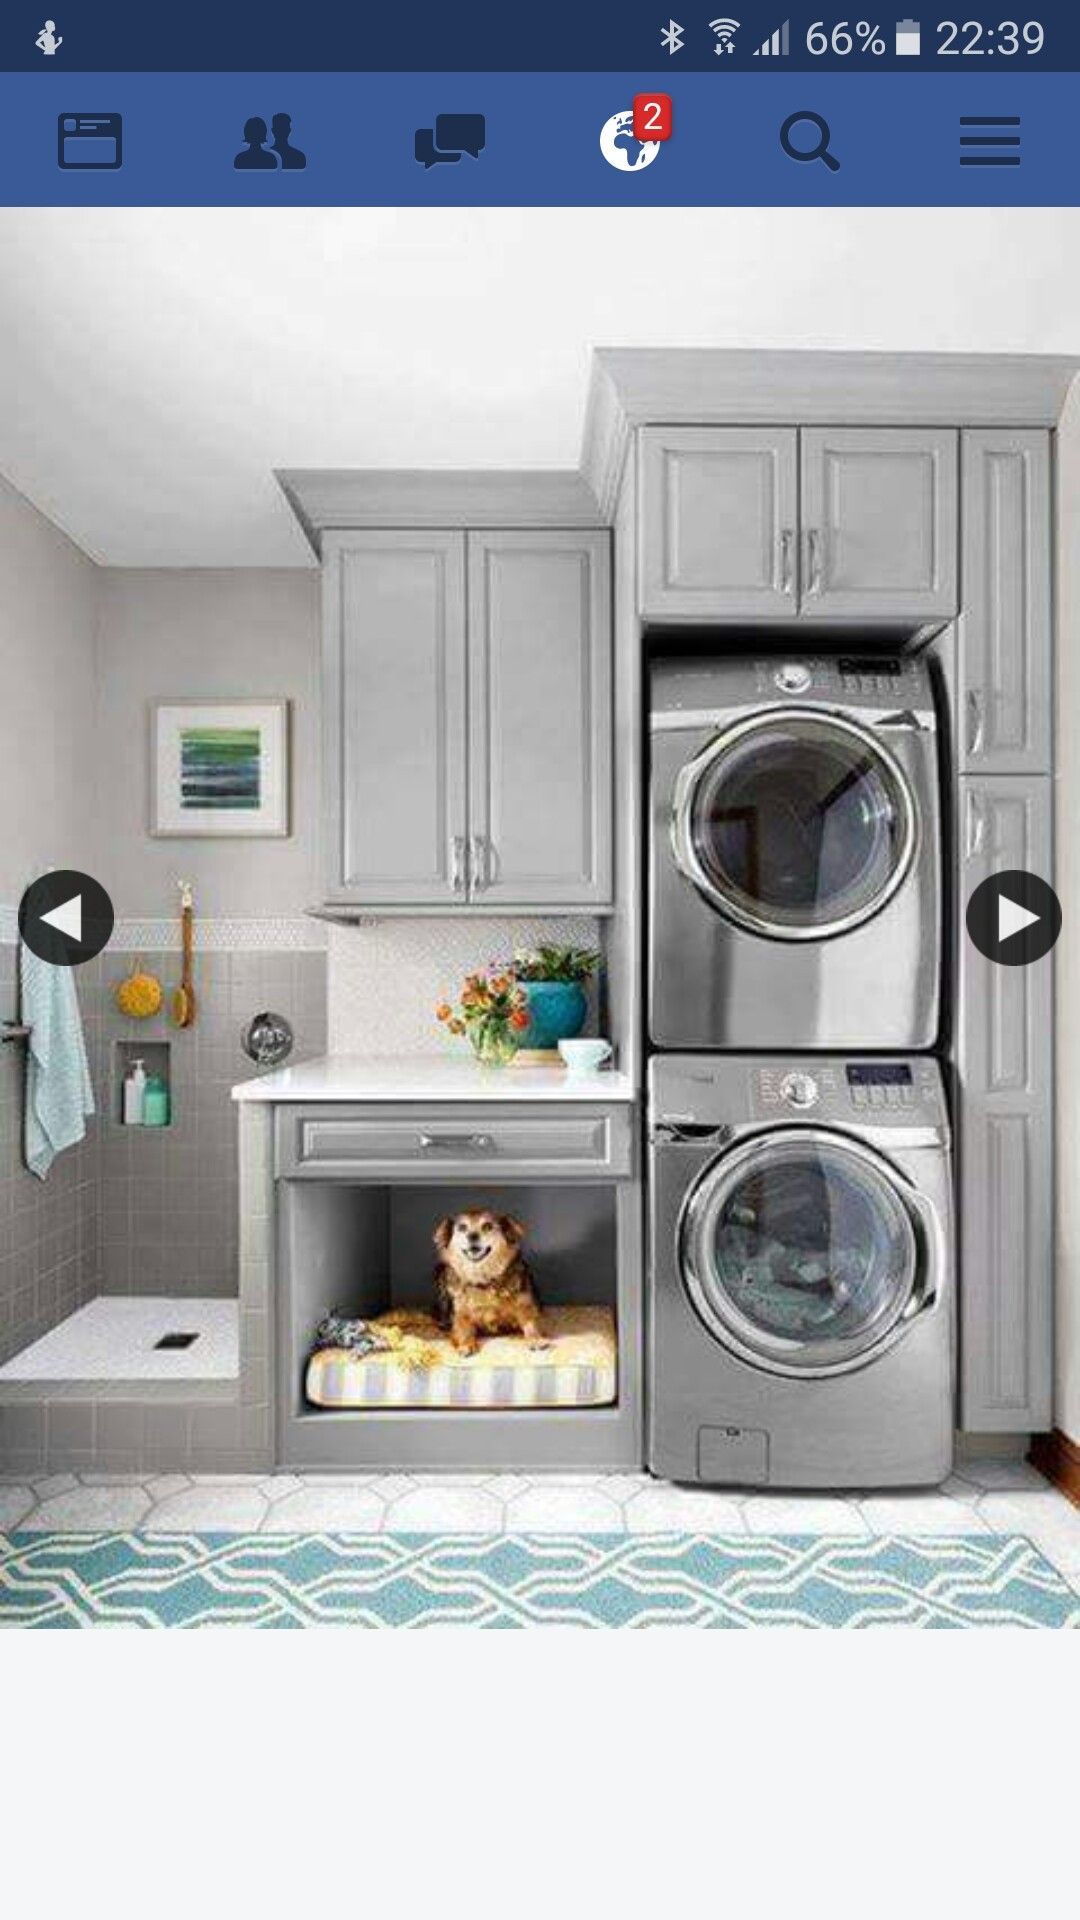 Laundry Room for Vertical Spaces A simple rearrangement of task areas takes advantage of vertical space to make cleanup easier for both two and